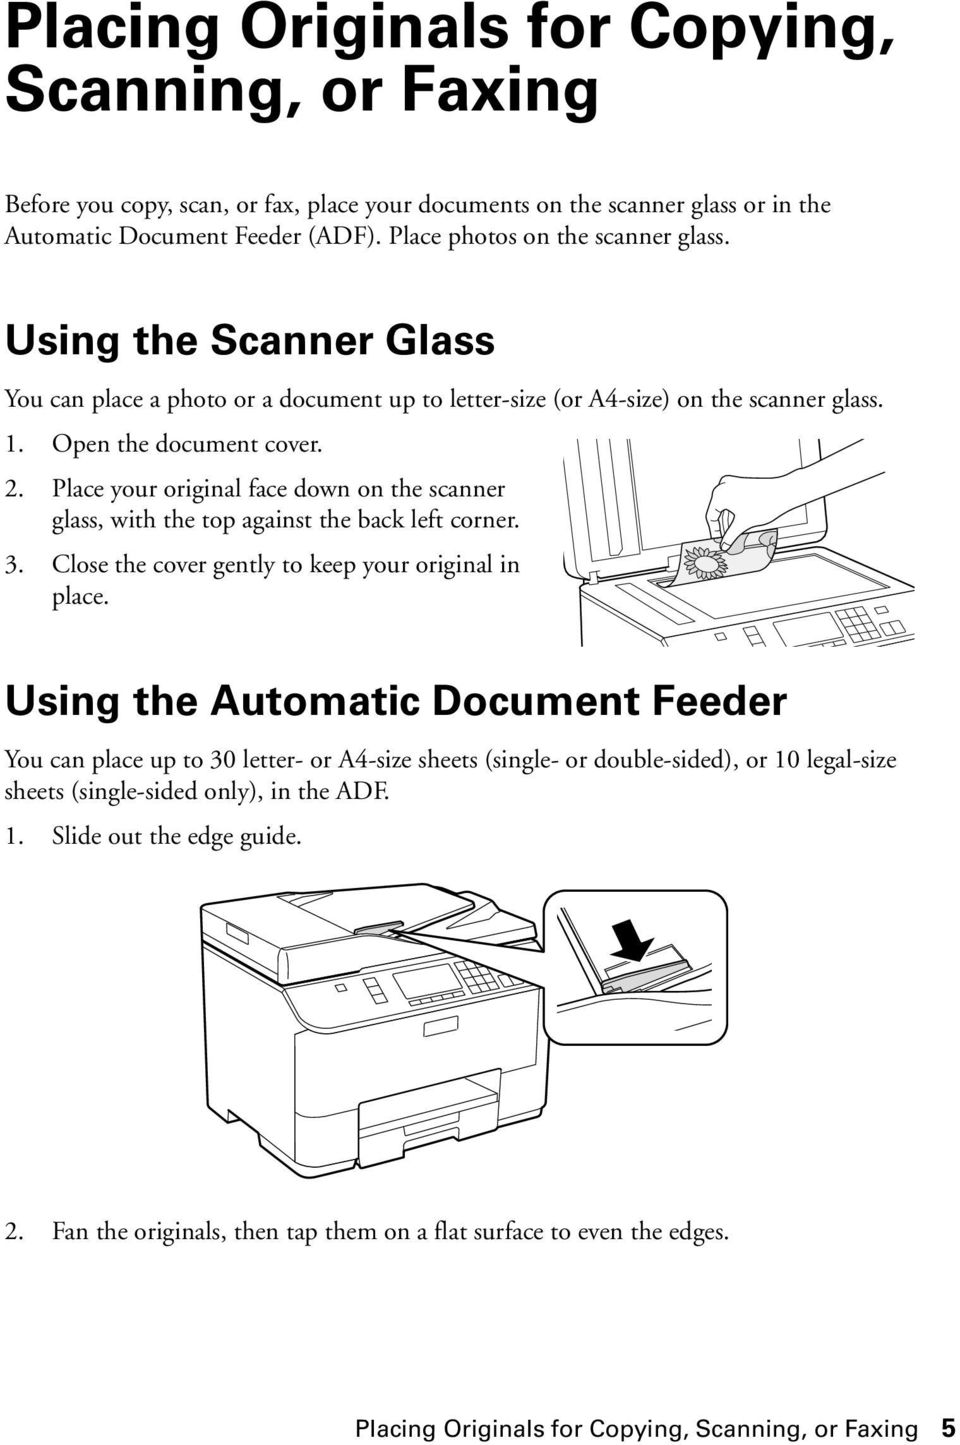 Place your original face down on the scanner glass, with the top against the back left corner. 3. Close the cover gently to keep your original in place.